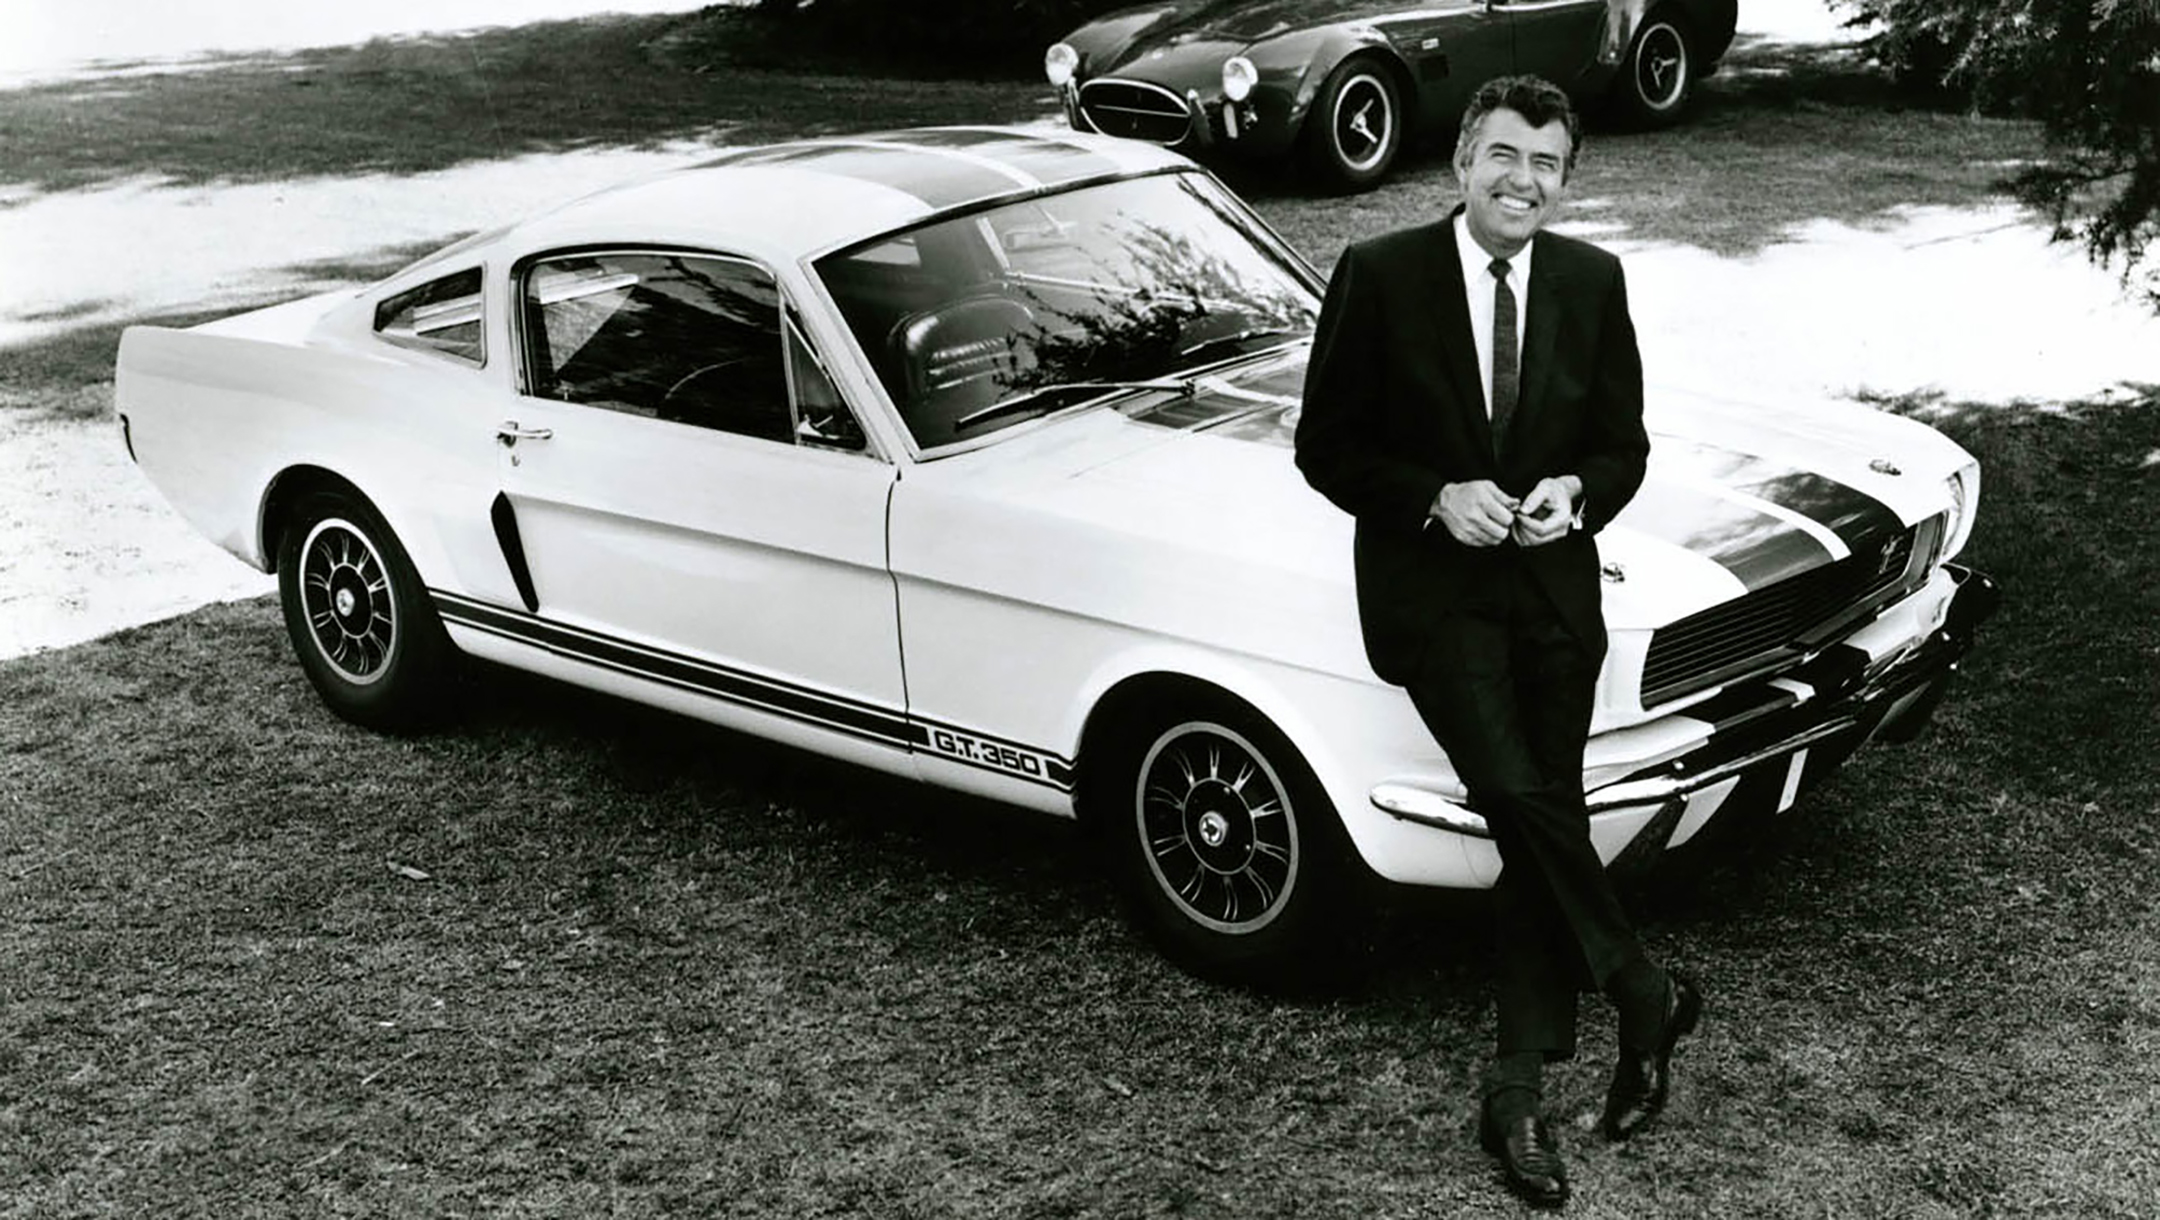 Carroll Shelby - 1965 - Shelby Mustang GT350 - heritage photography - via Shelby America